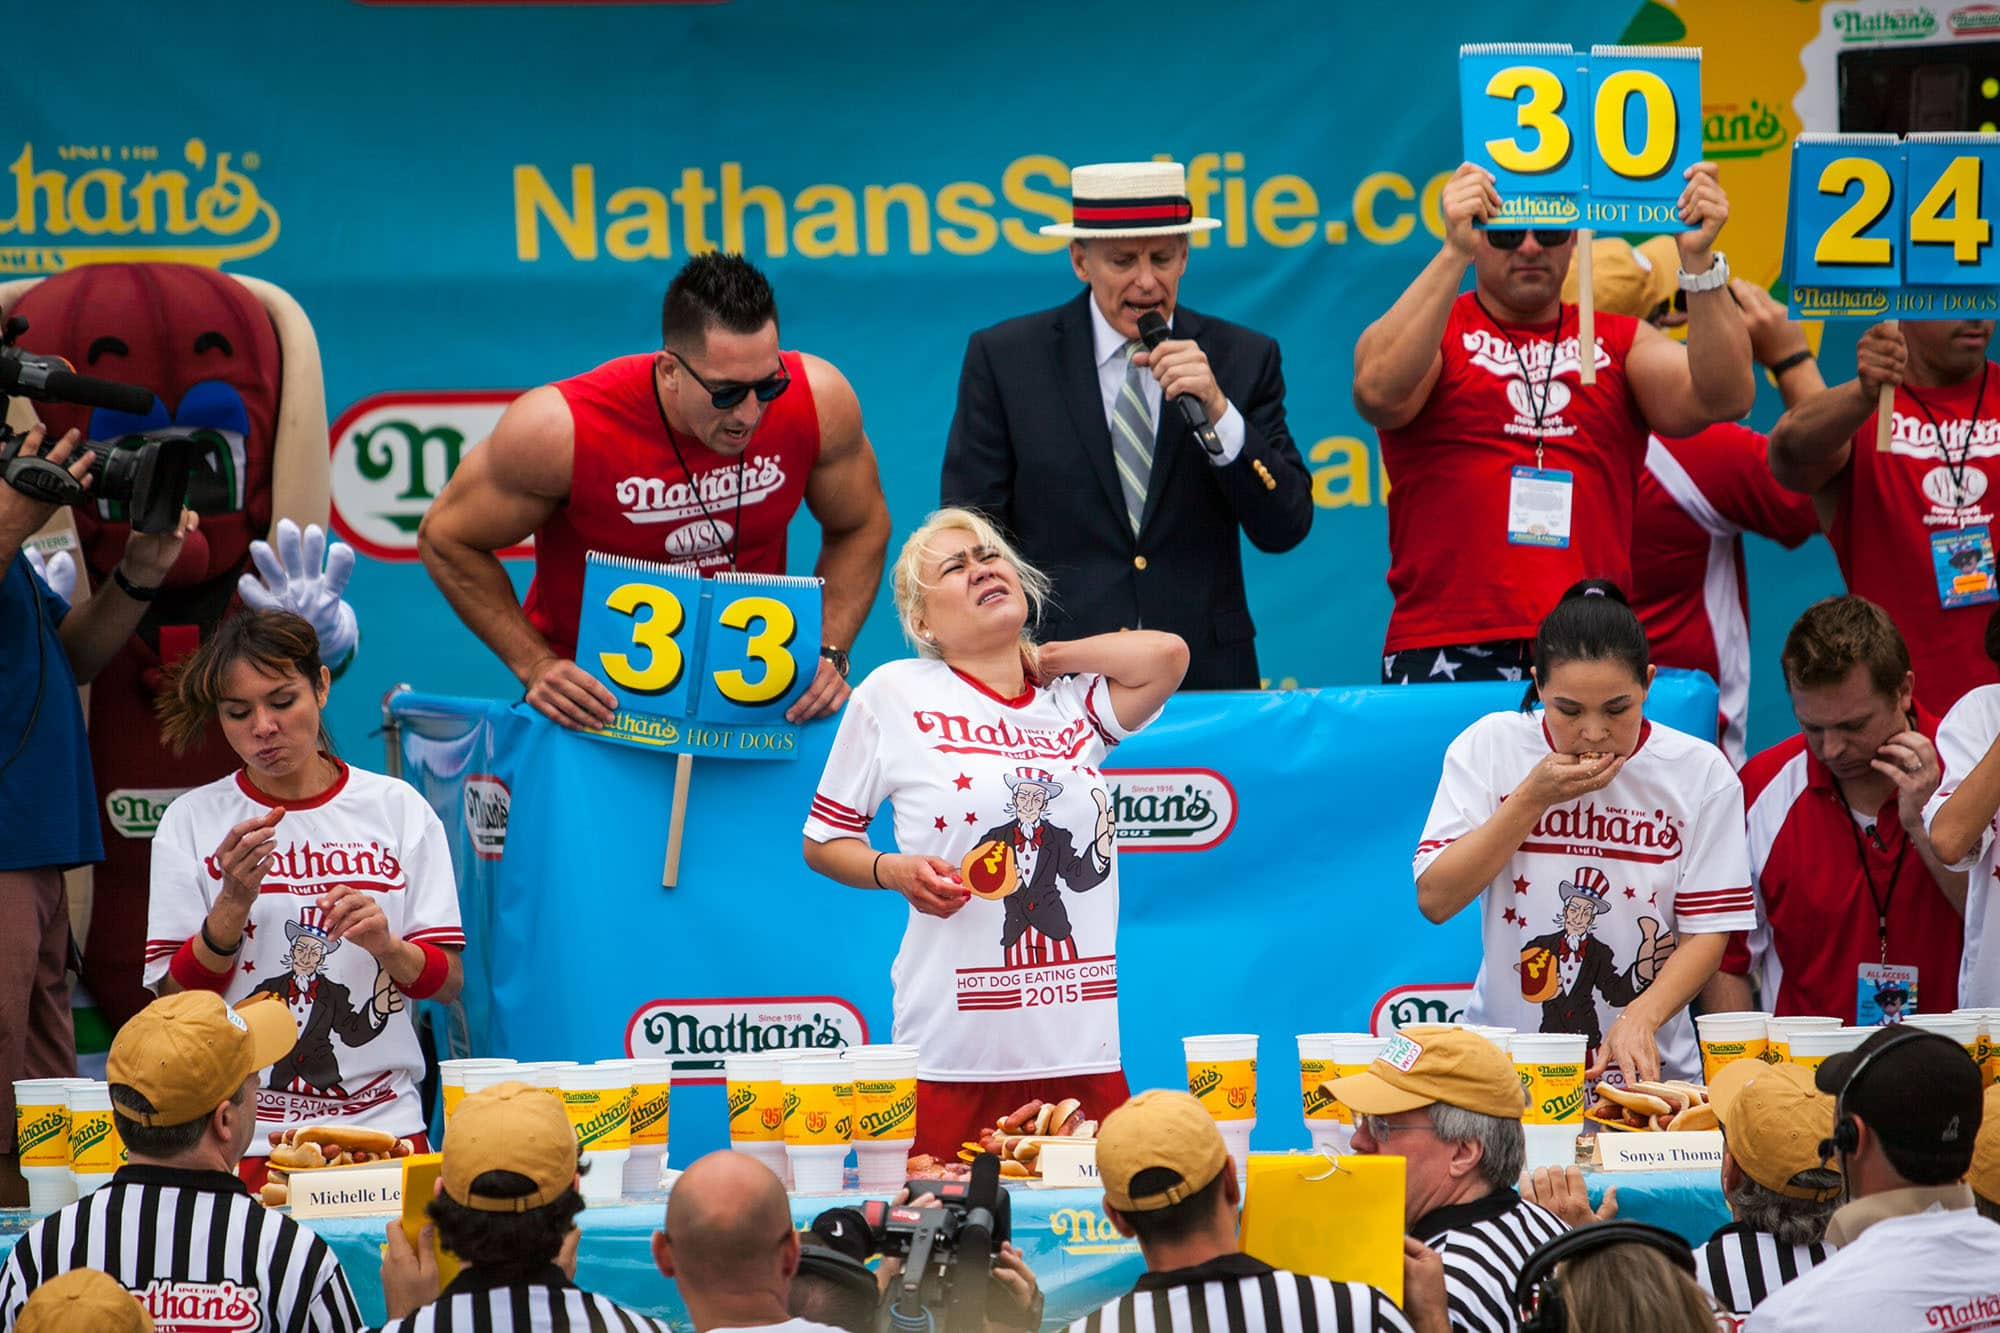 Miki Sudo wins the 2015 Nathan's Famous July 4 Hot Dog Eating Contest